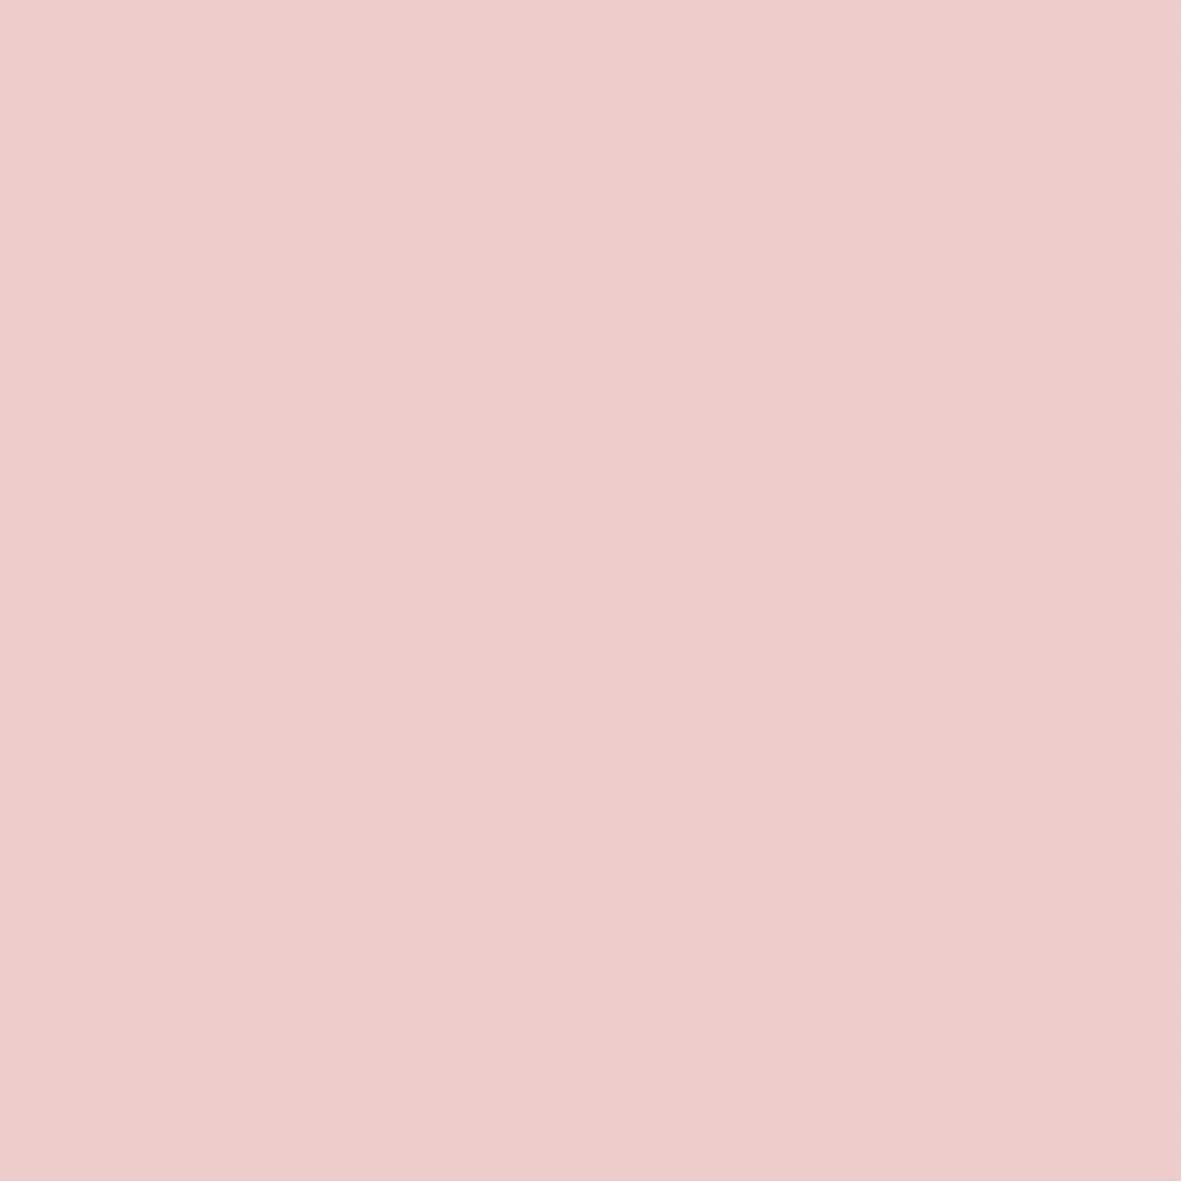 15 Solid Soft Warm Neutrals Instagram Highlight Cover